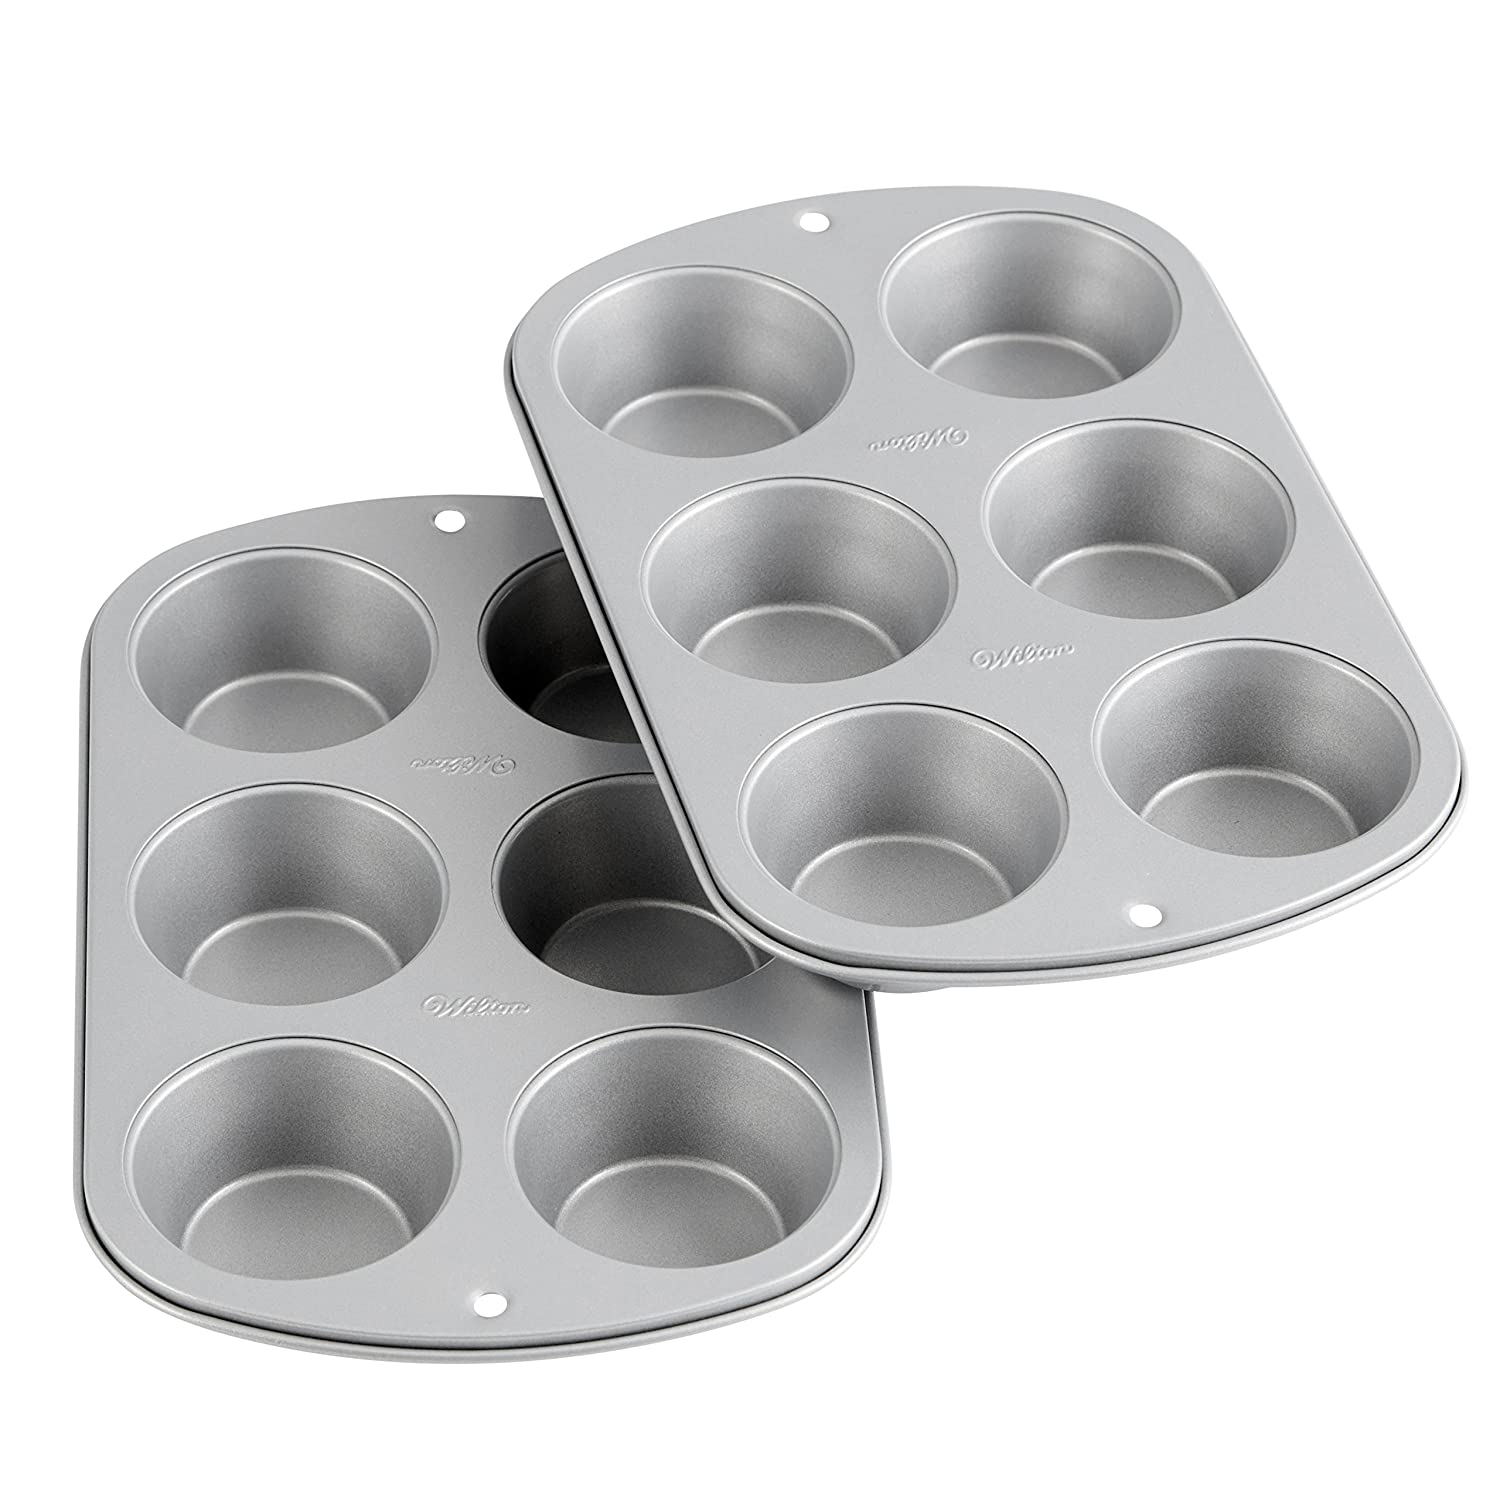 Wilton Recipe Right Non-Stick 6-Cup Standard Muffin Pan, Multipack of 2